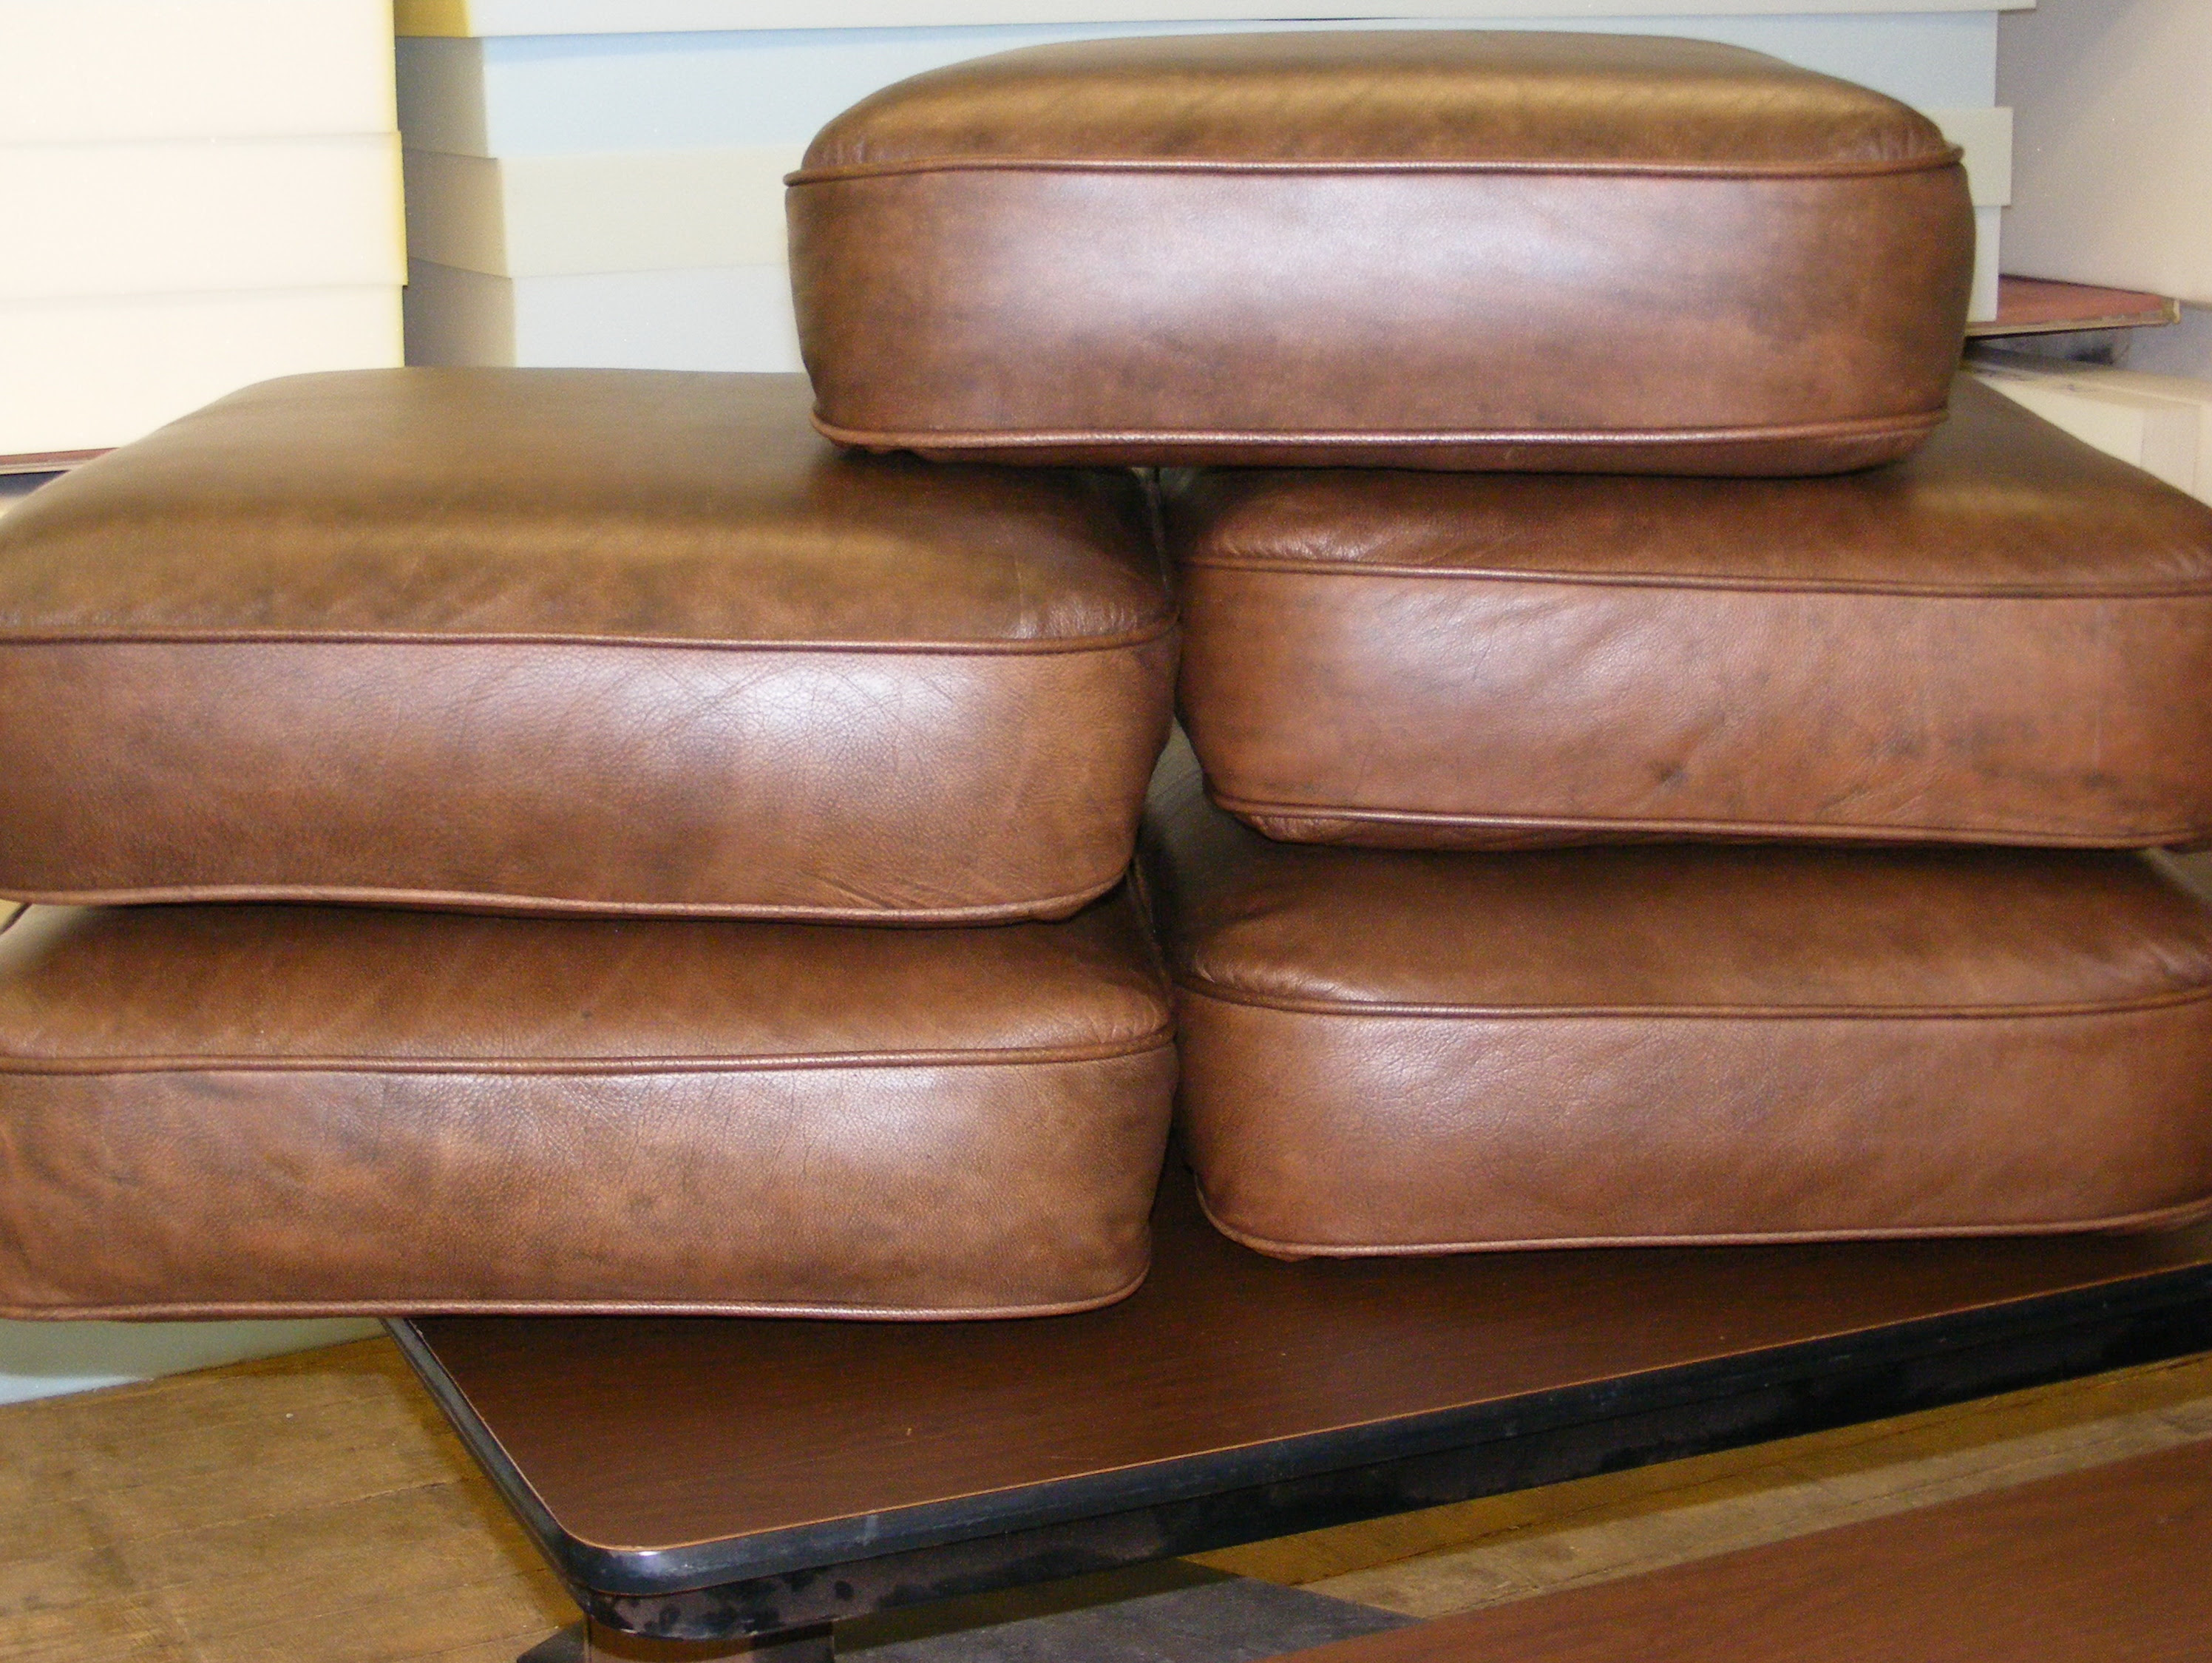 Replacement Foam For Couch Cushions   Home Design Ideas